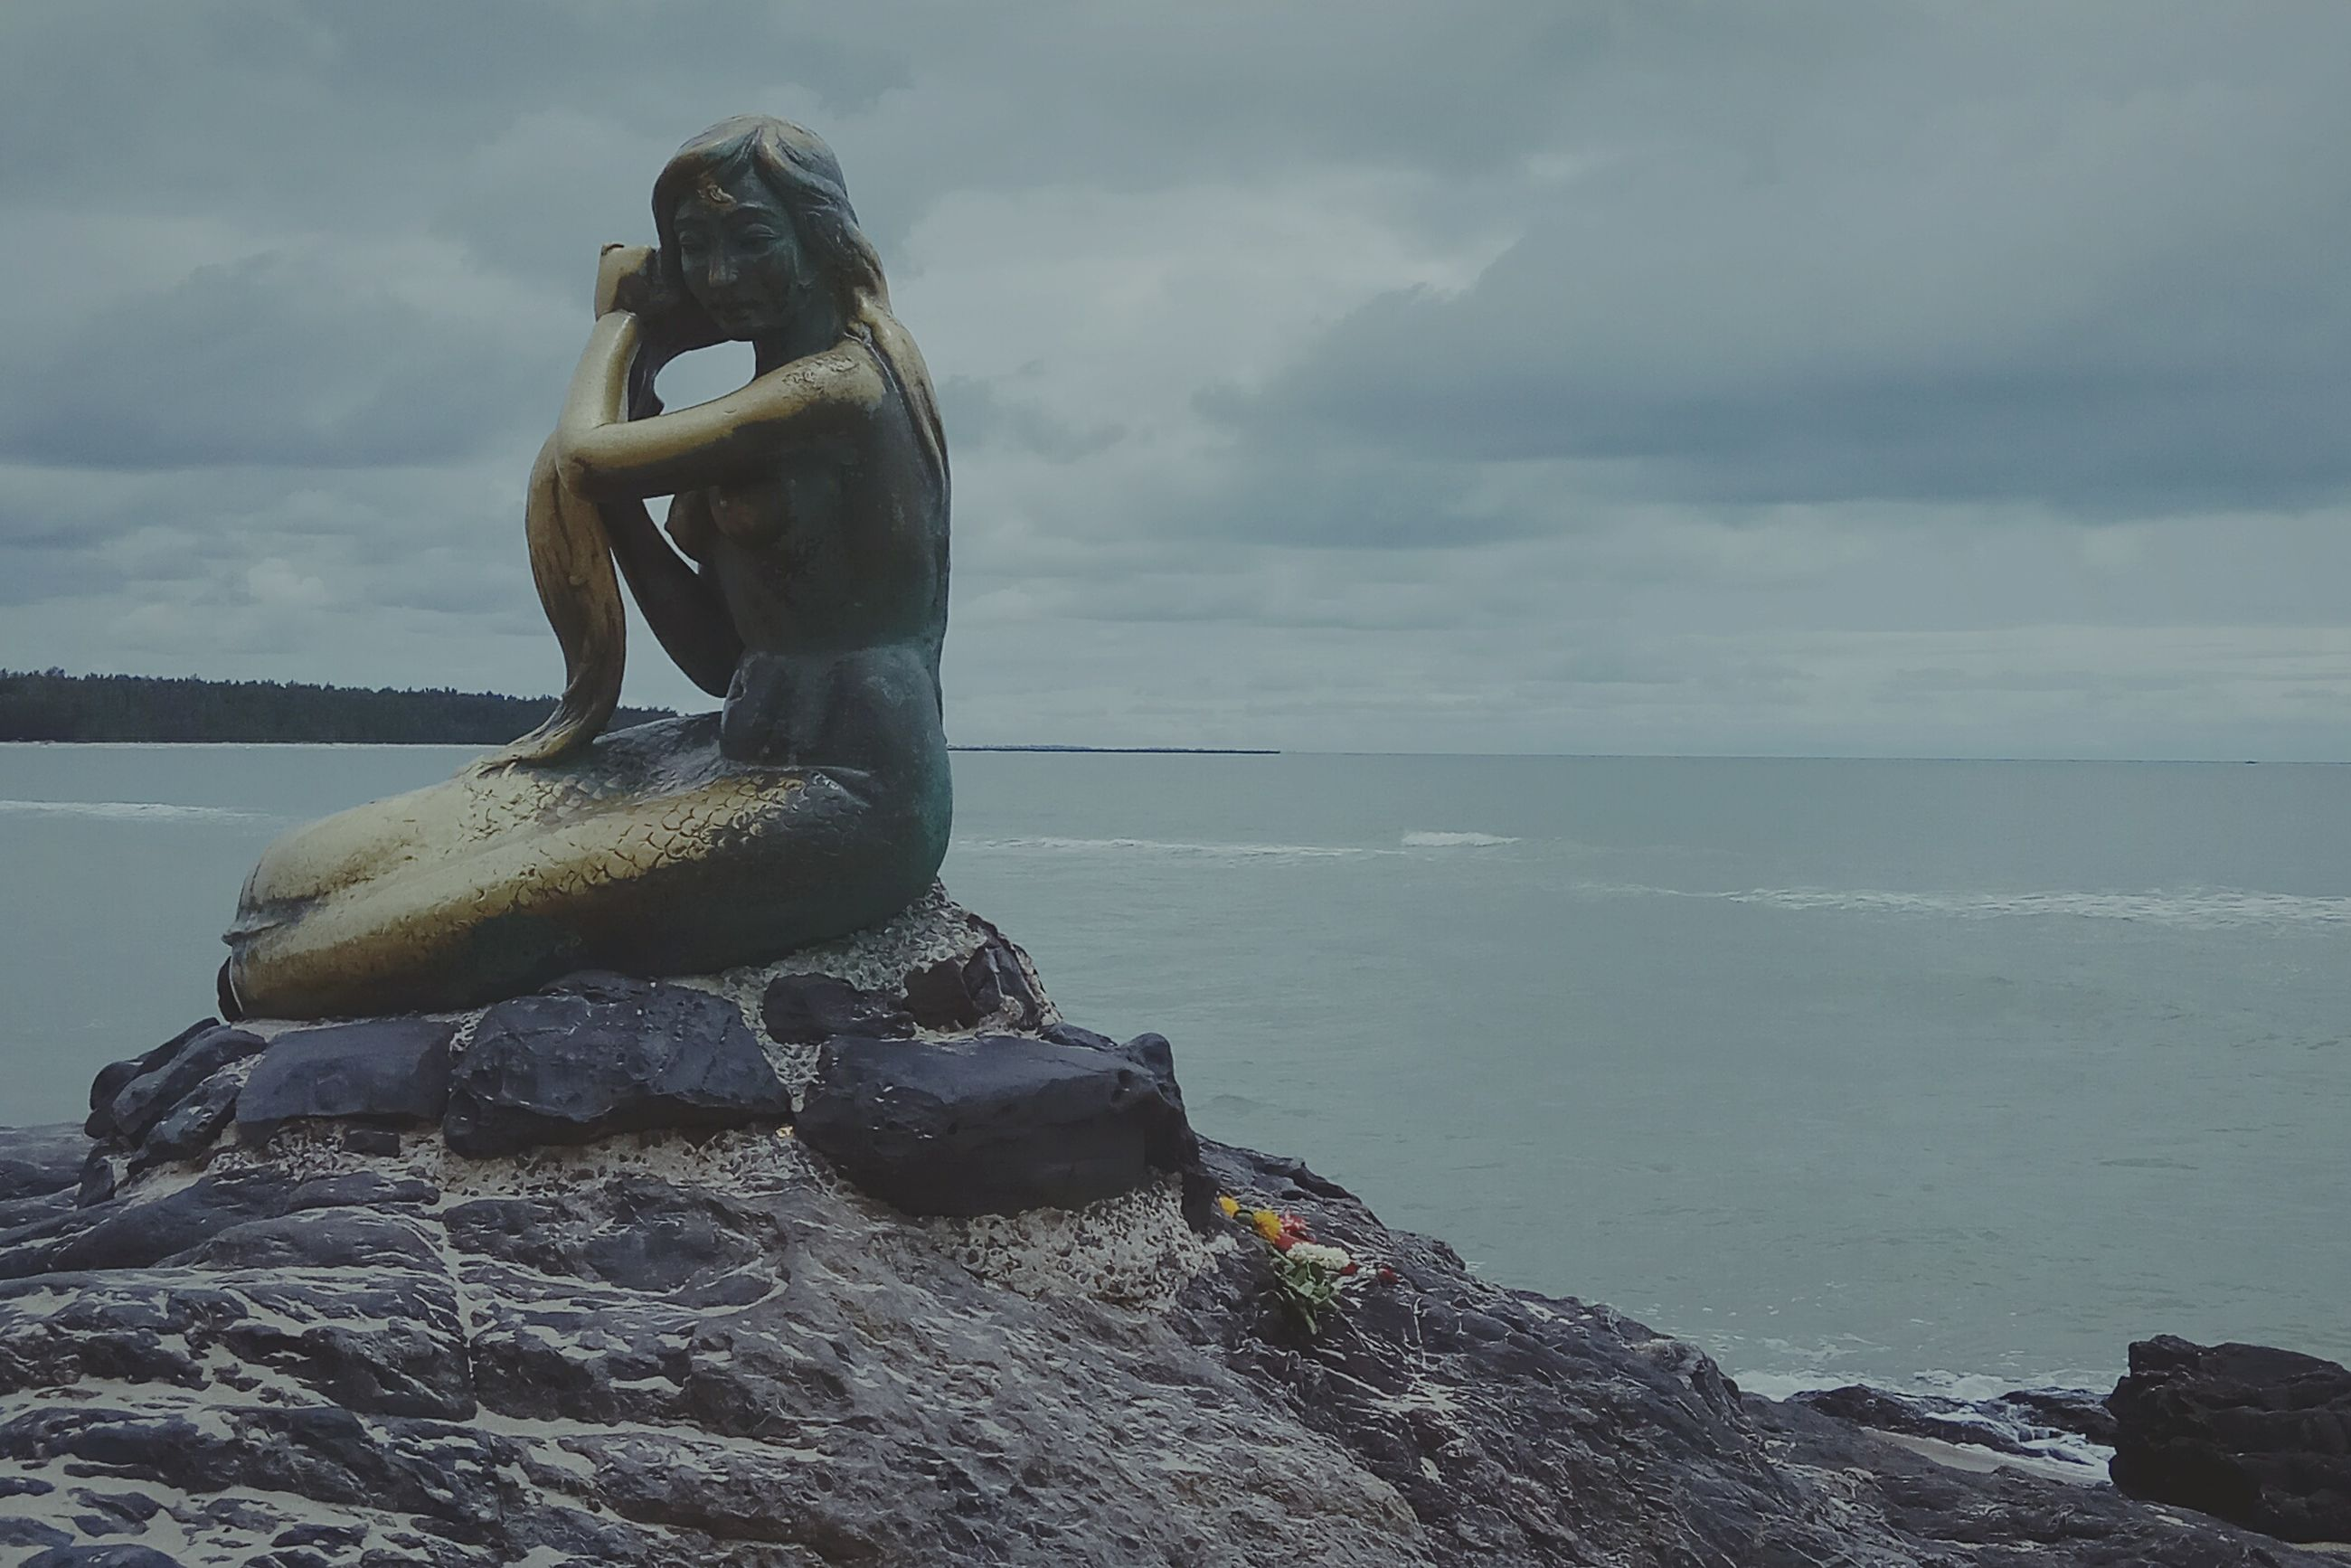 water, sea, rock - object, sky, cloud - sky, nature, horizon over water, tranquil scene, scenics, day, outdoors, beauty in nature, statue, sculpture, no people